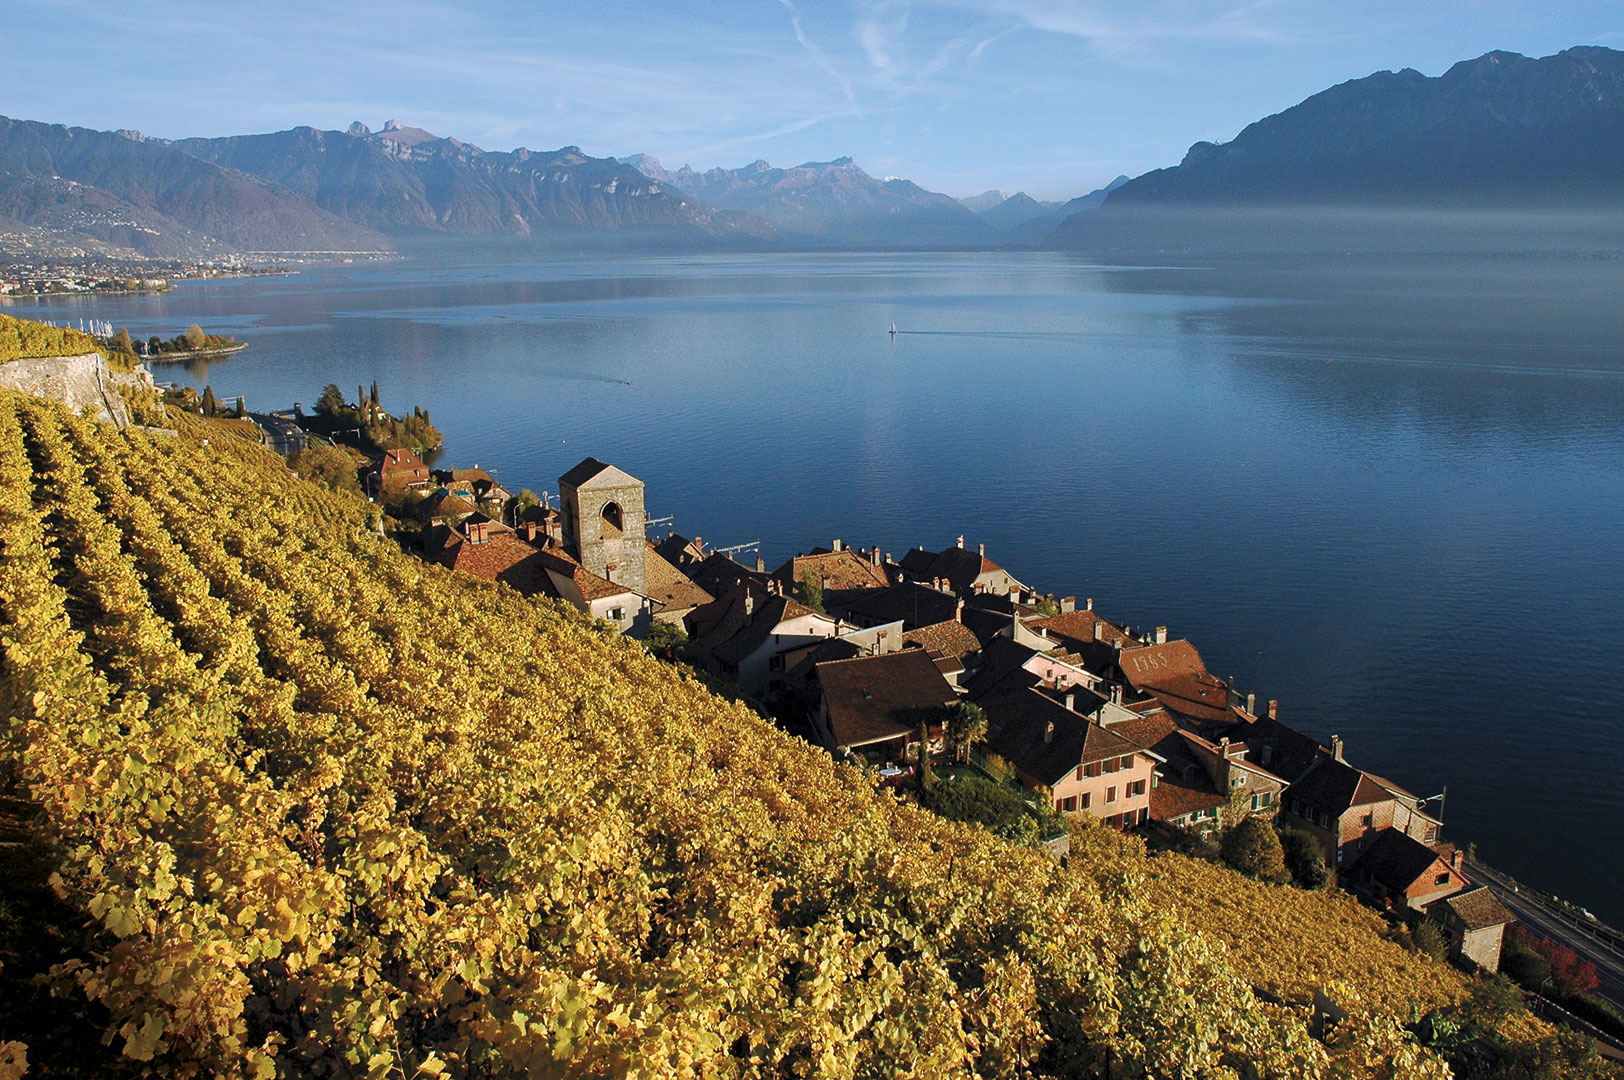 Lake Geneva and the terraced vineyards of Lavaux, near the village of Saint-Saphorin.